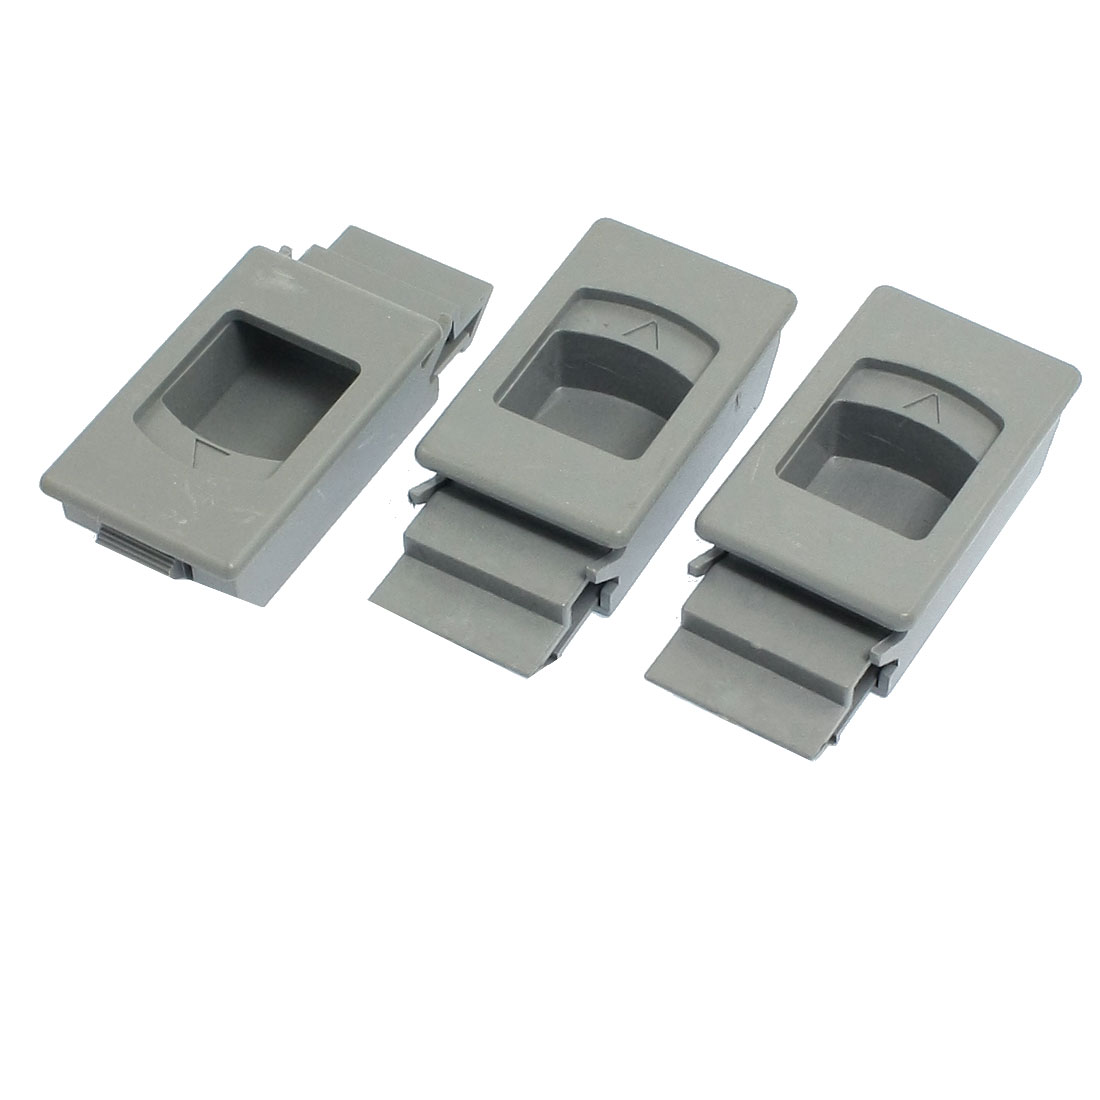 Gray Plastic Inside Pull Rectangle Latch for Cabinets 3 Pcs